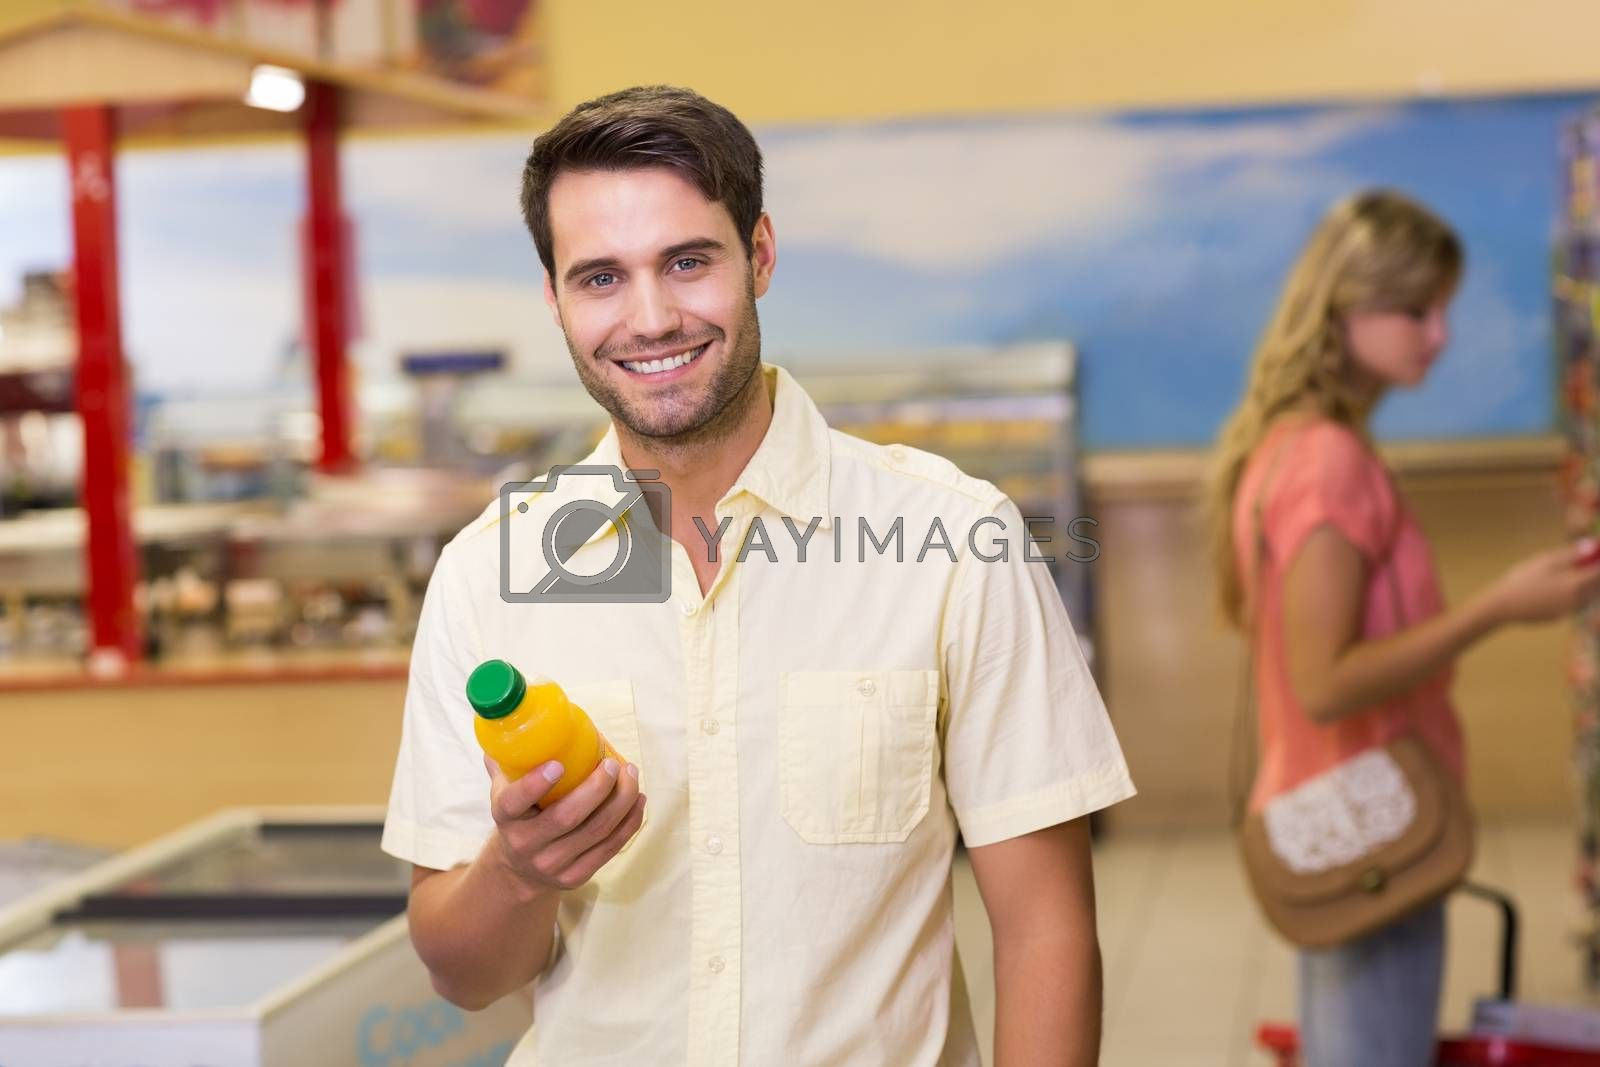 Royalty free image of Portrait of a smiling handome man buying products  by Wavebreakmedia